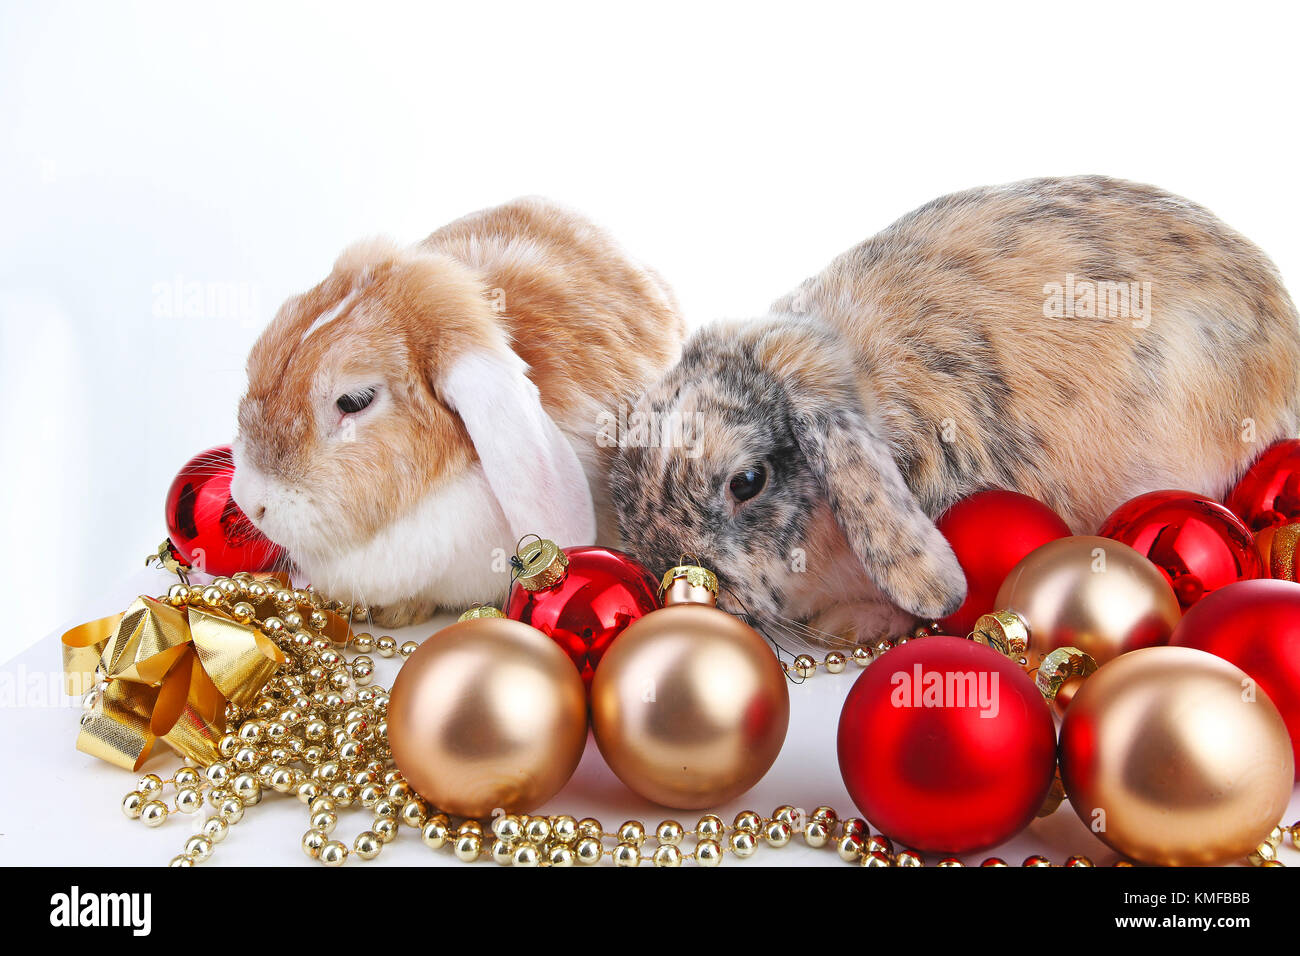 Christmas animals. Cut lop eared rabbit pet friends on isolated white studio background. Rabbits with red and gold - Stock Image